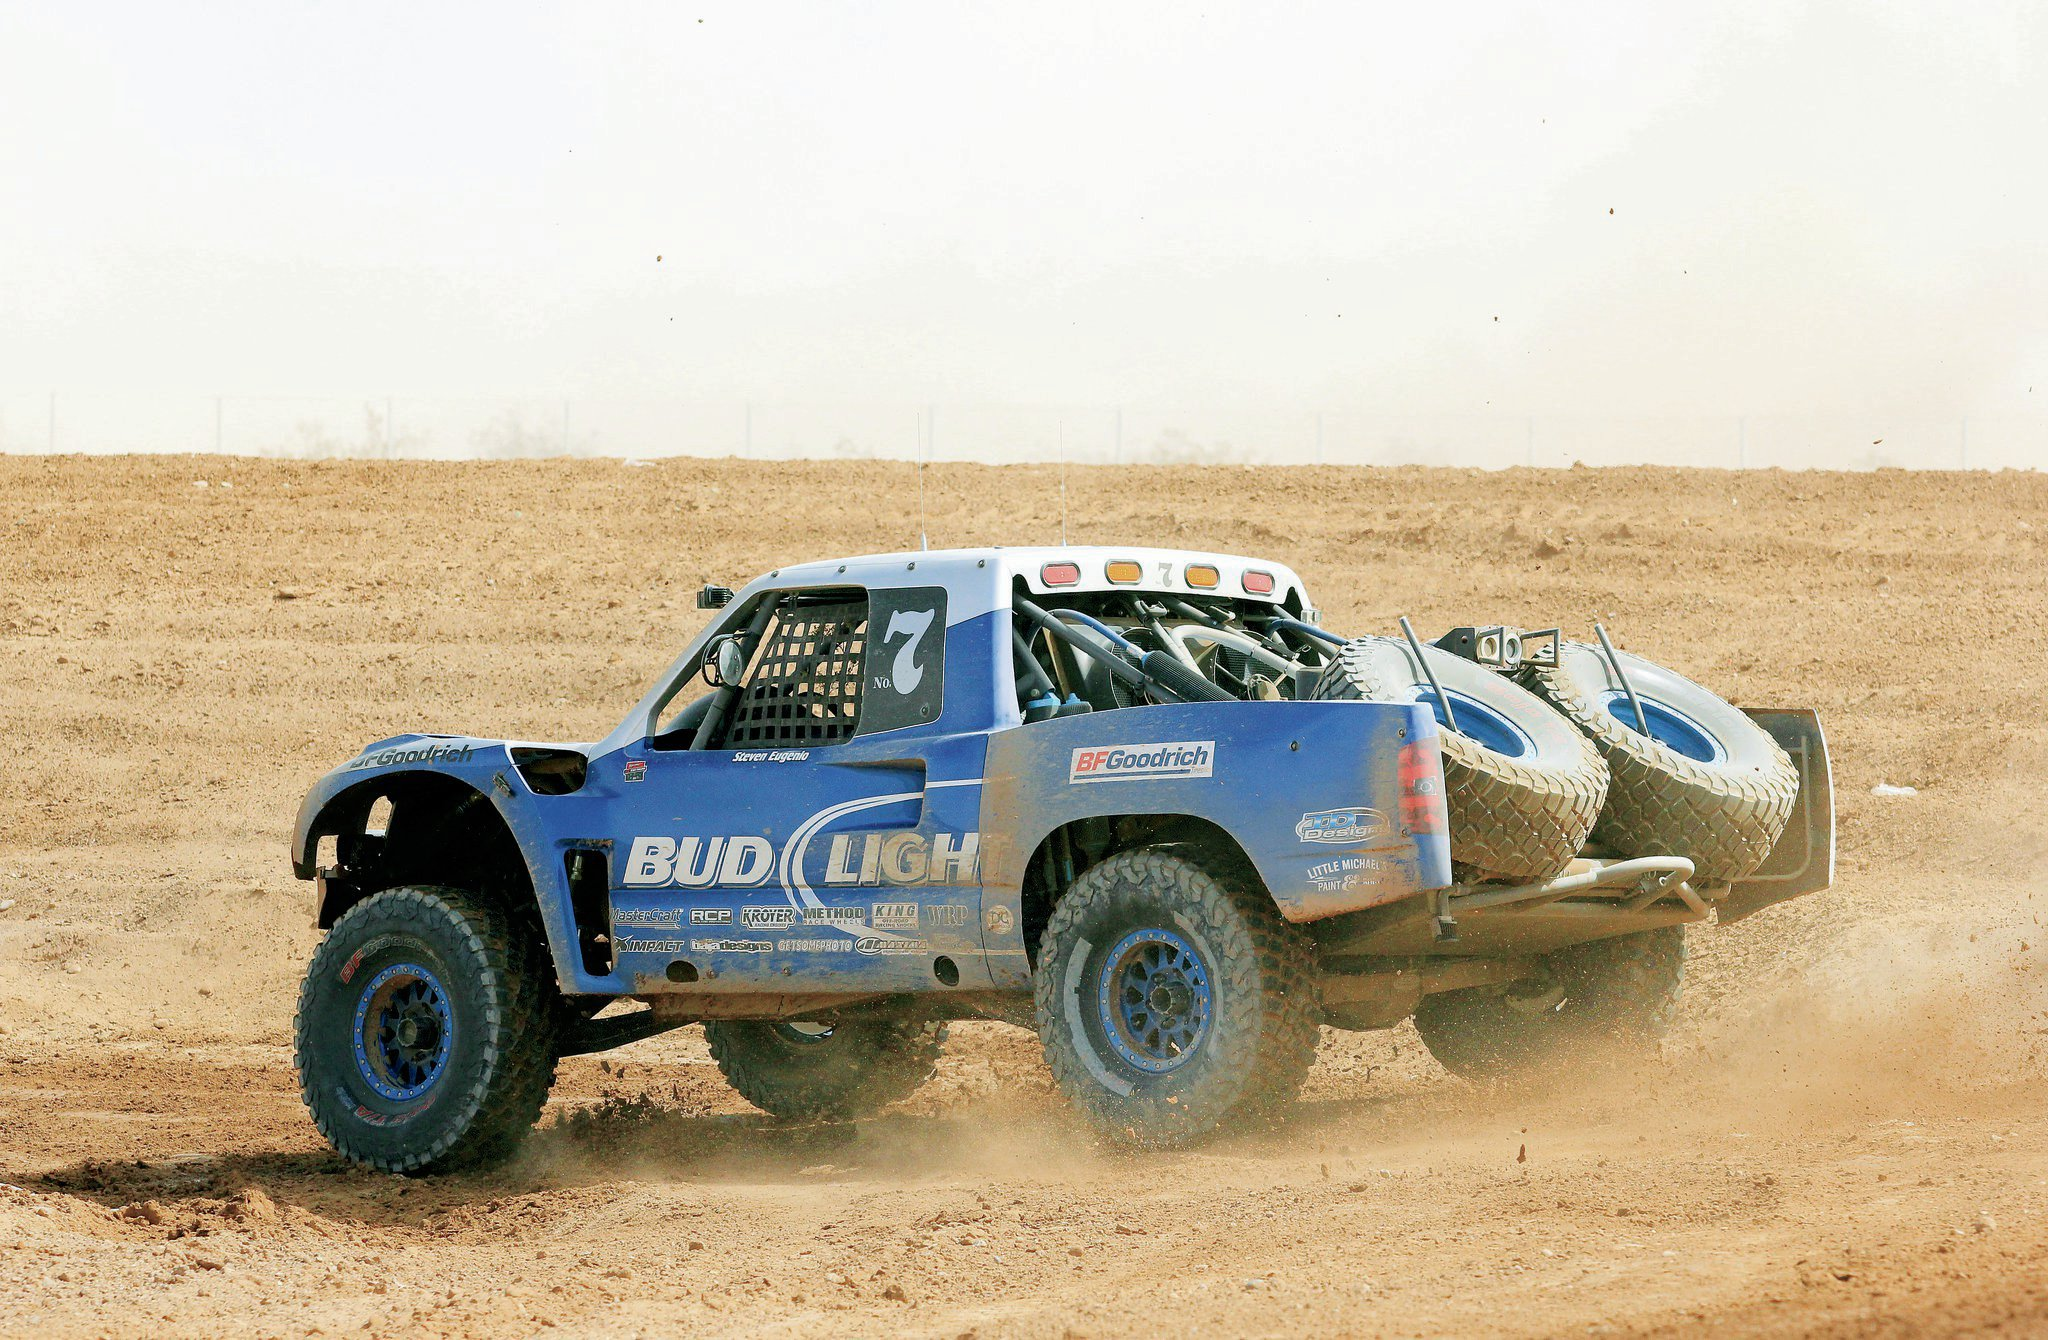 Steven Eugenio was the fastest Trophy Truck on the course.